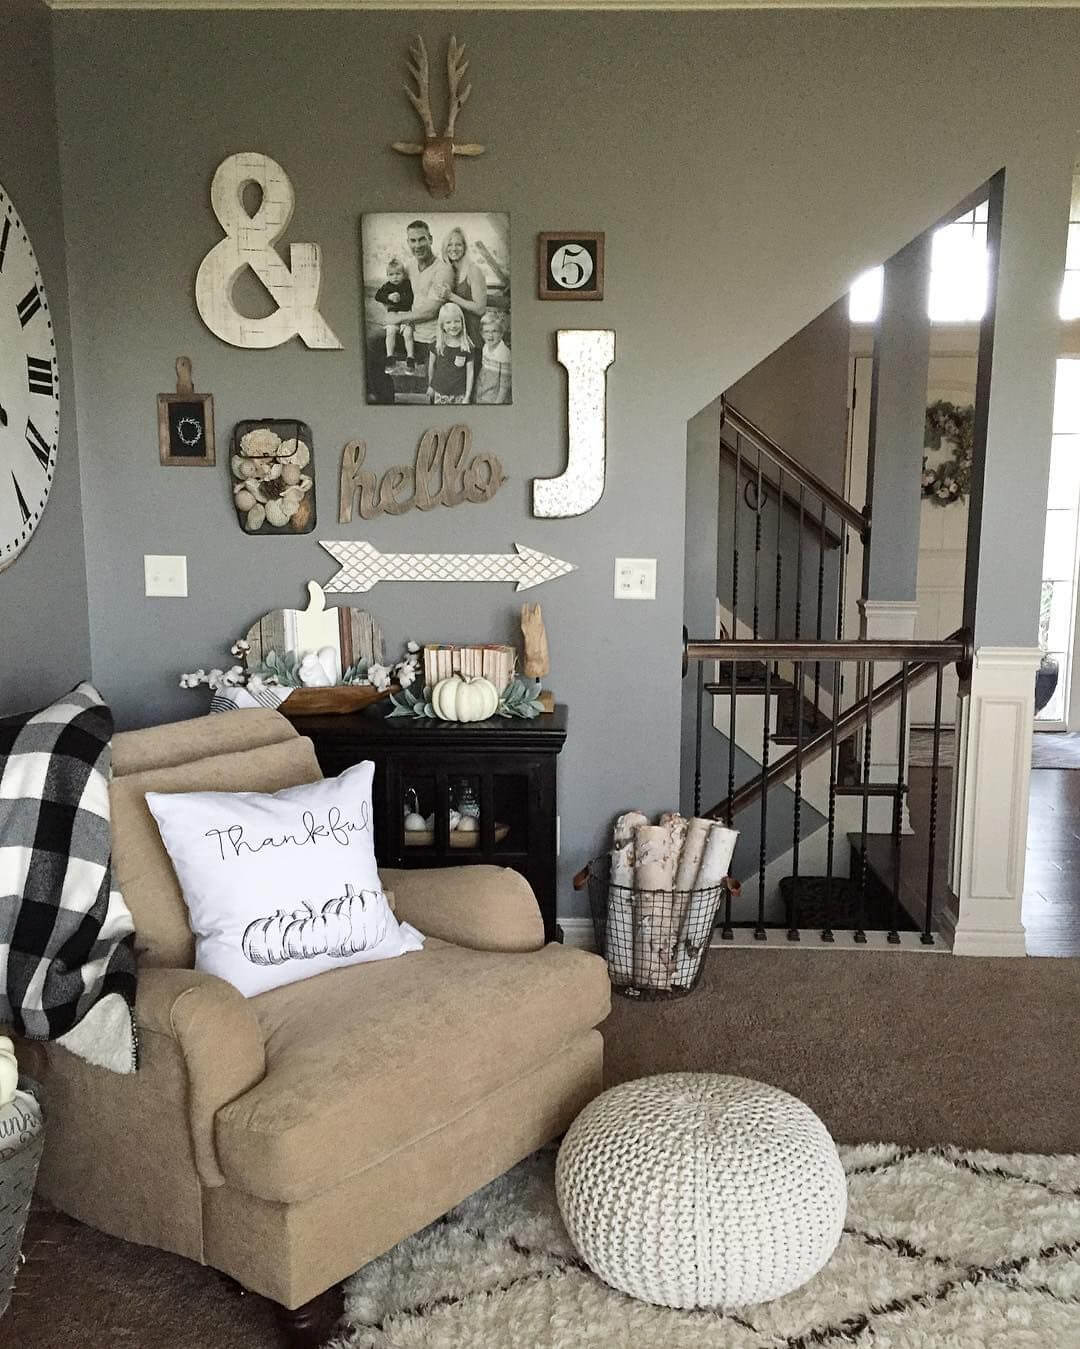 Wonderful Wall Designs For Living Room Of Charming Rustic Decor Ideas